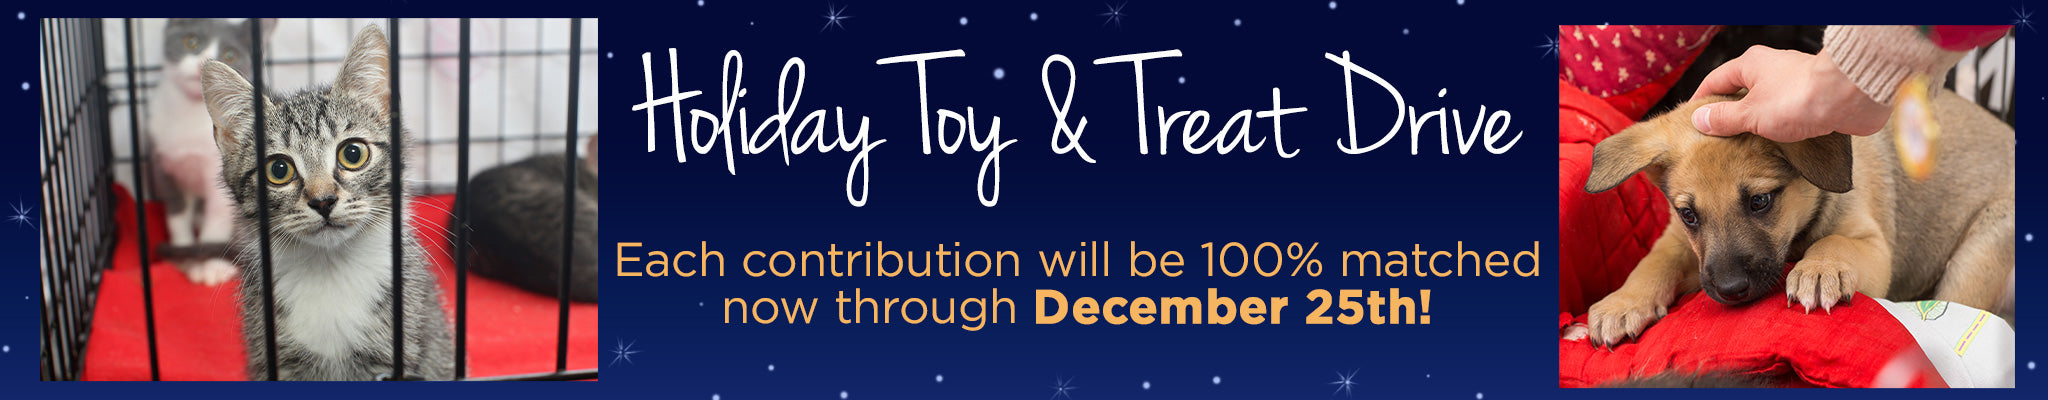 Holiday Toy & Treat Drive | Each contribution will be 100% matched now through December 25th!